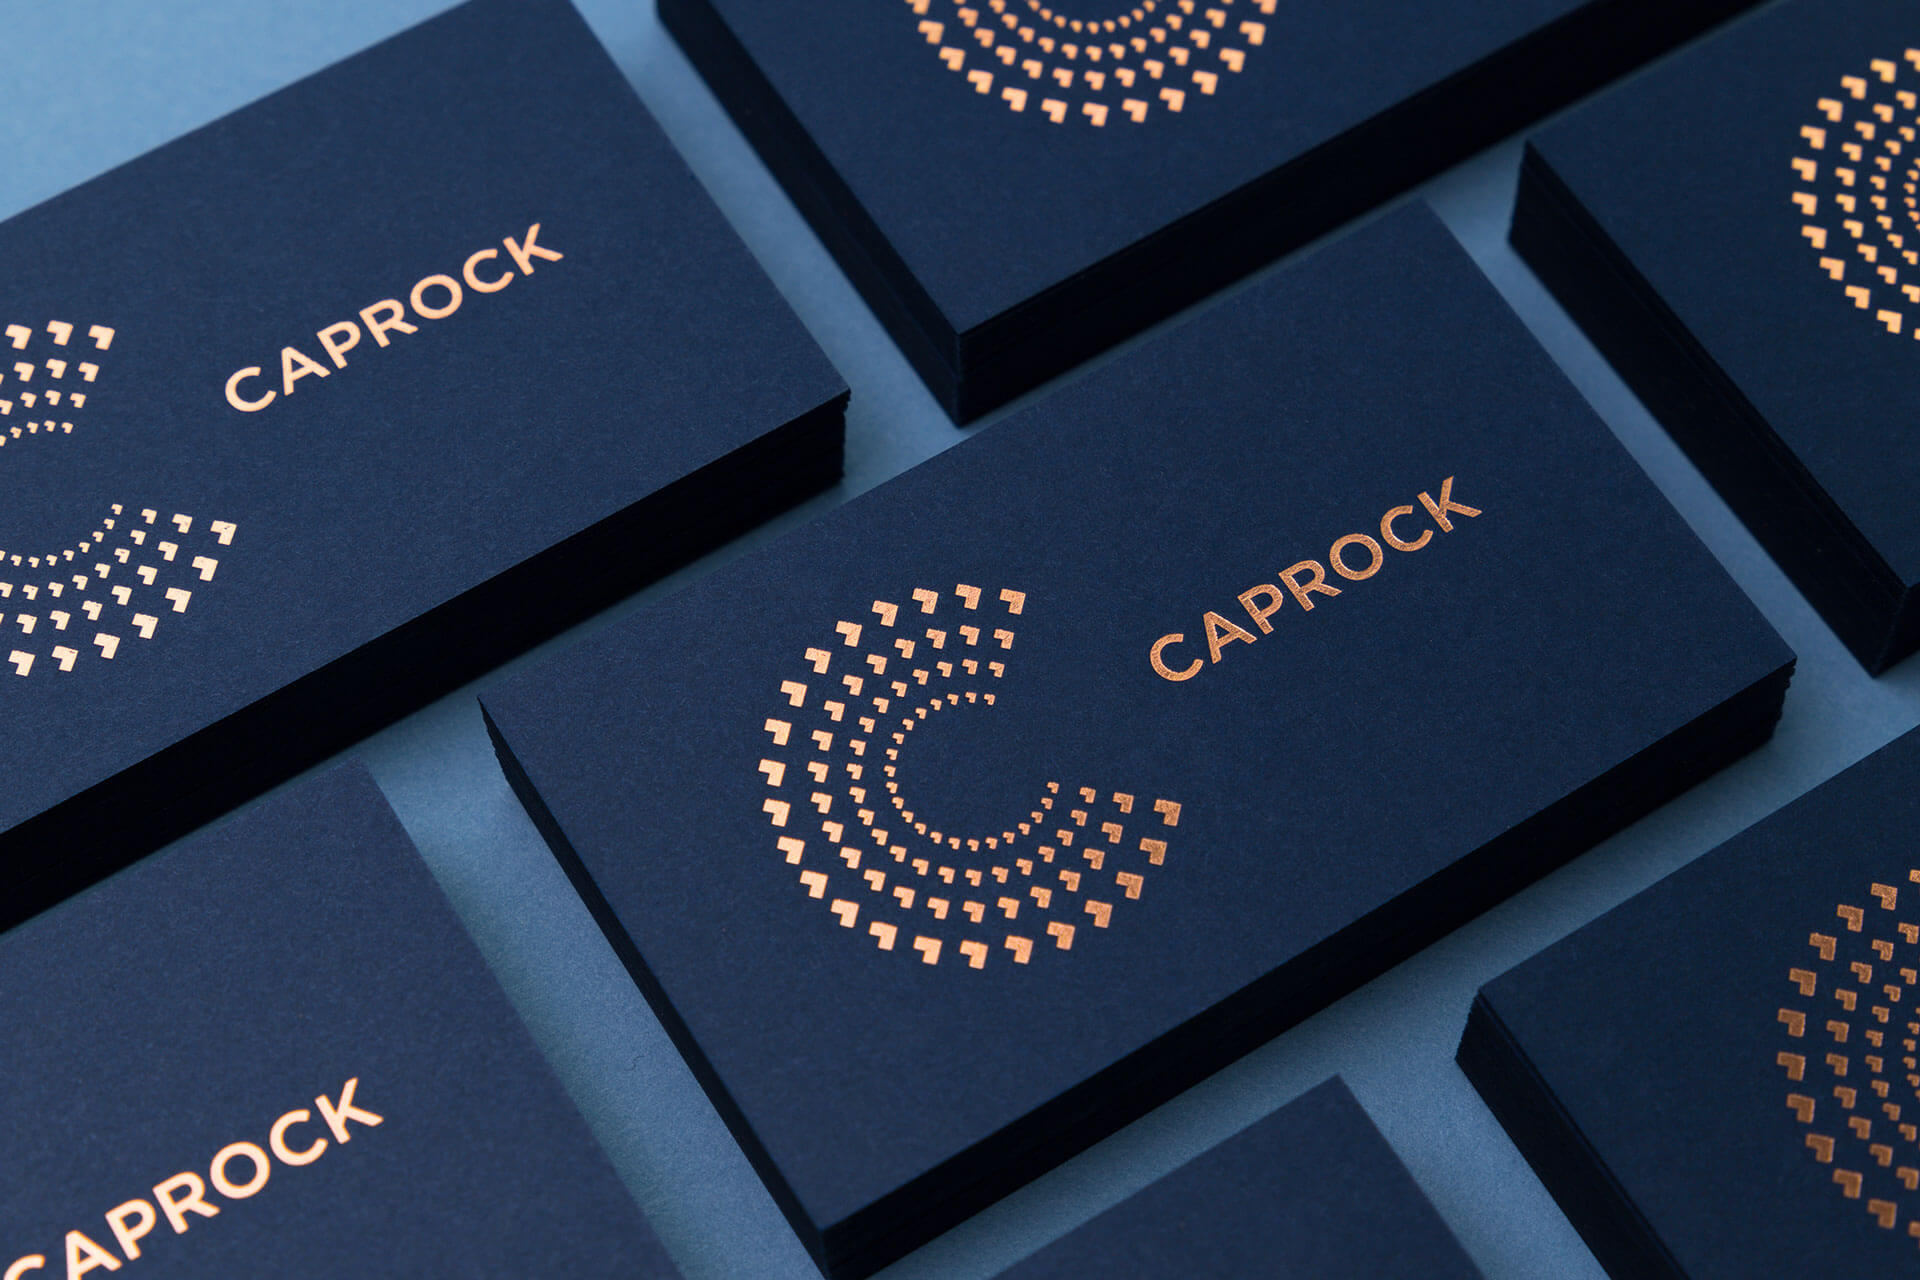 The Caprock Group